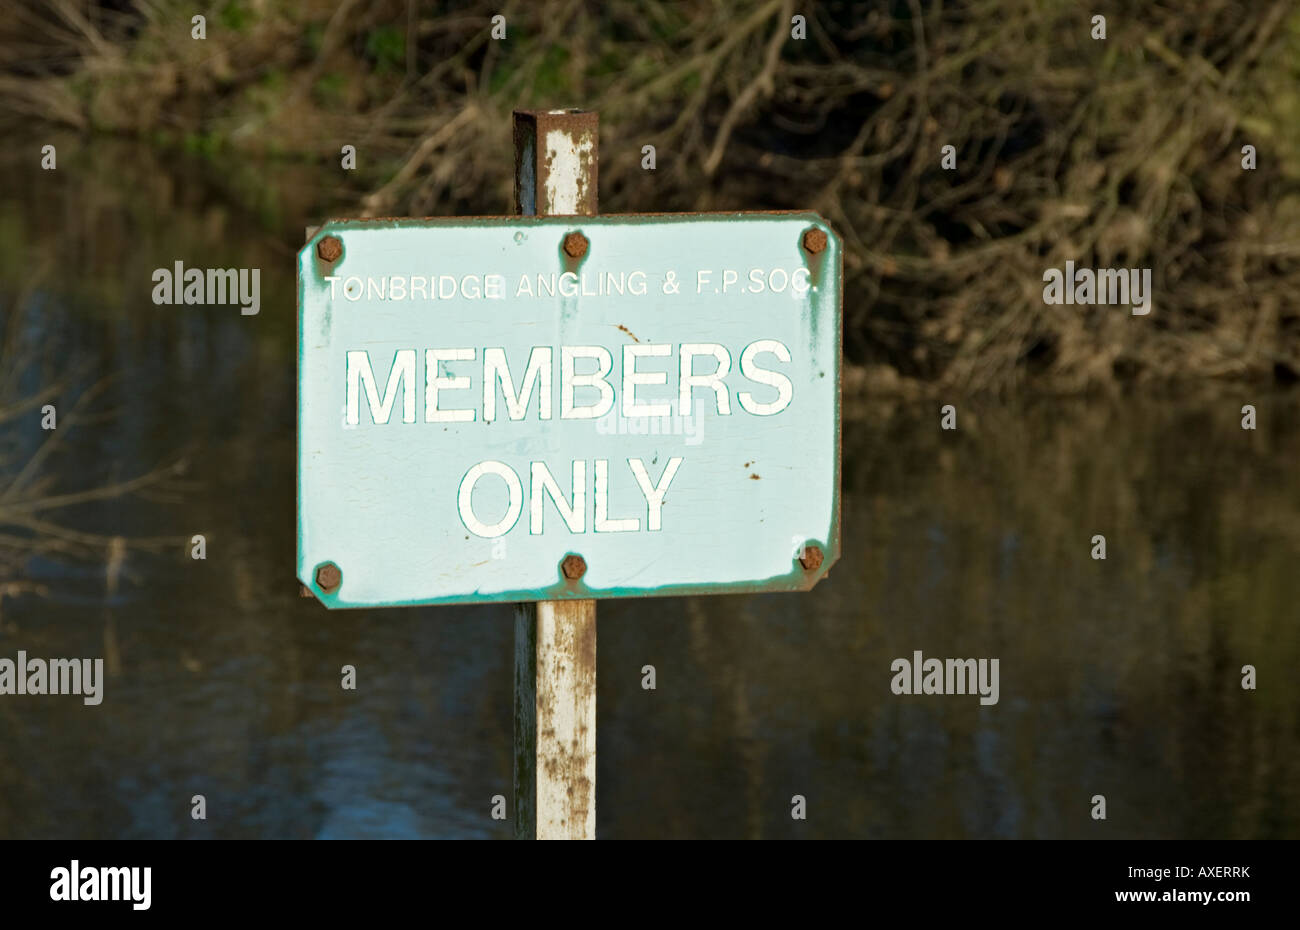 A members only sign for anglers on the River Medway in Kent. - Stock Image